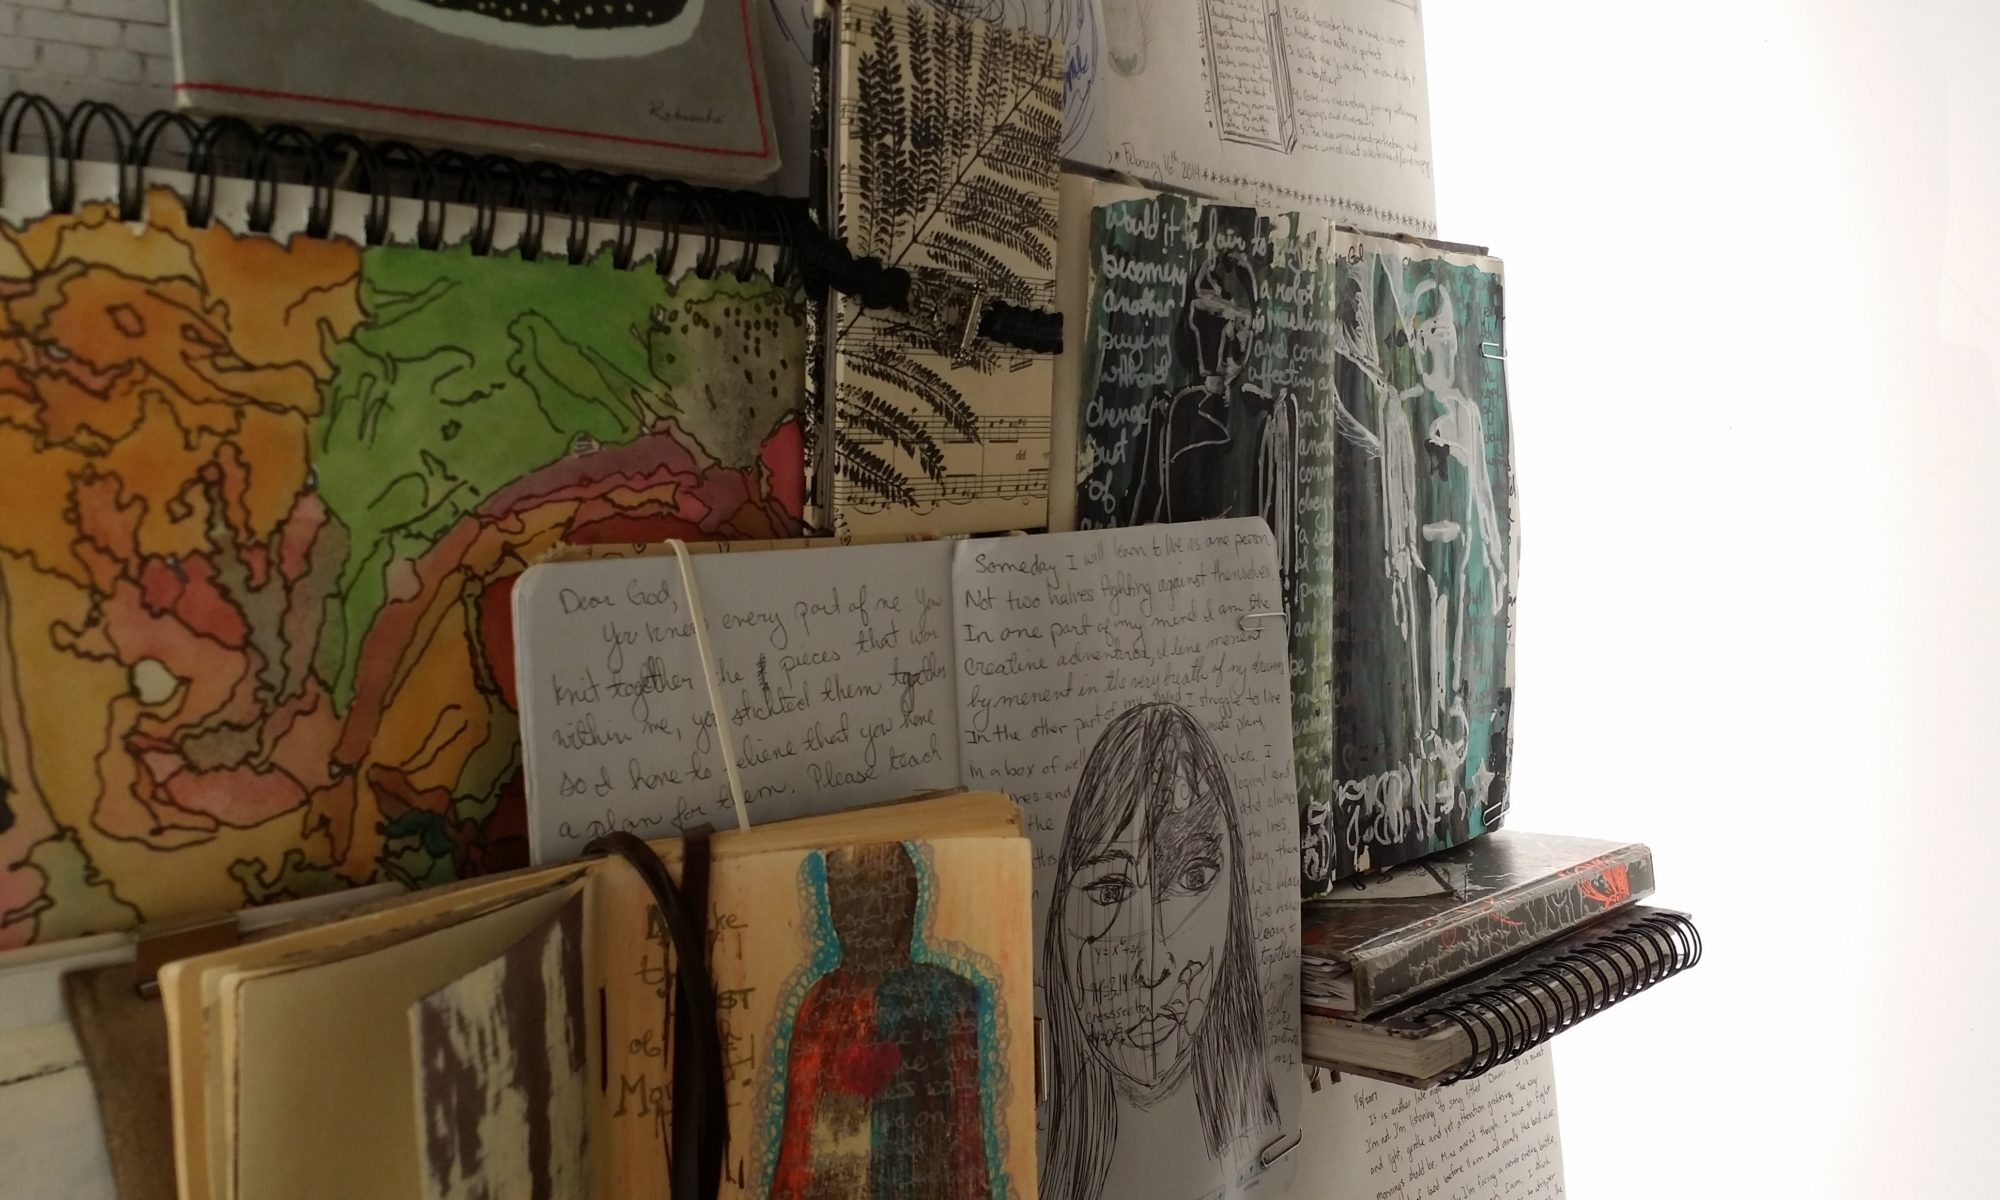 Up close view of the journals on display at the Riverside Art Museum